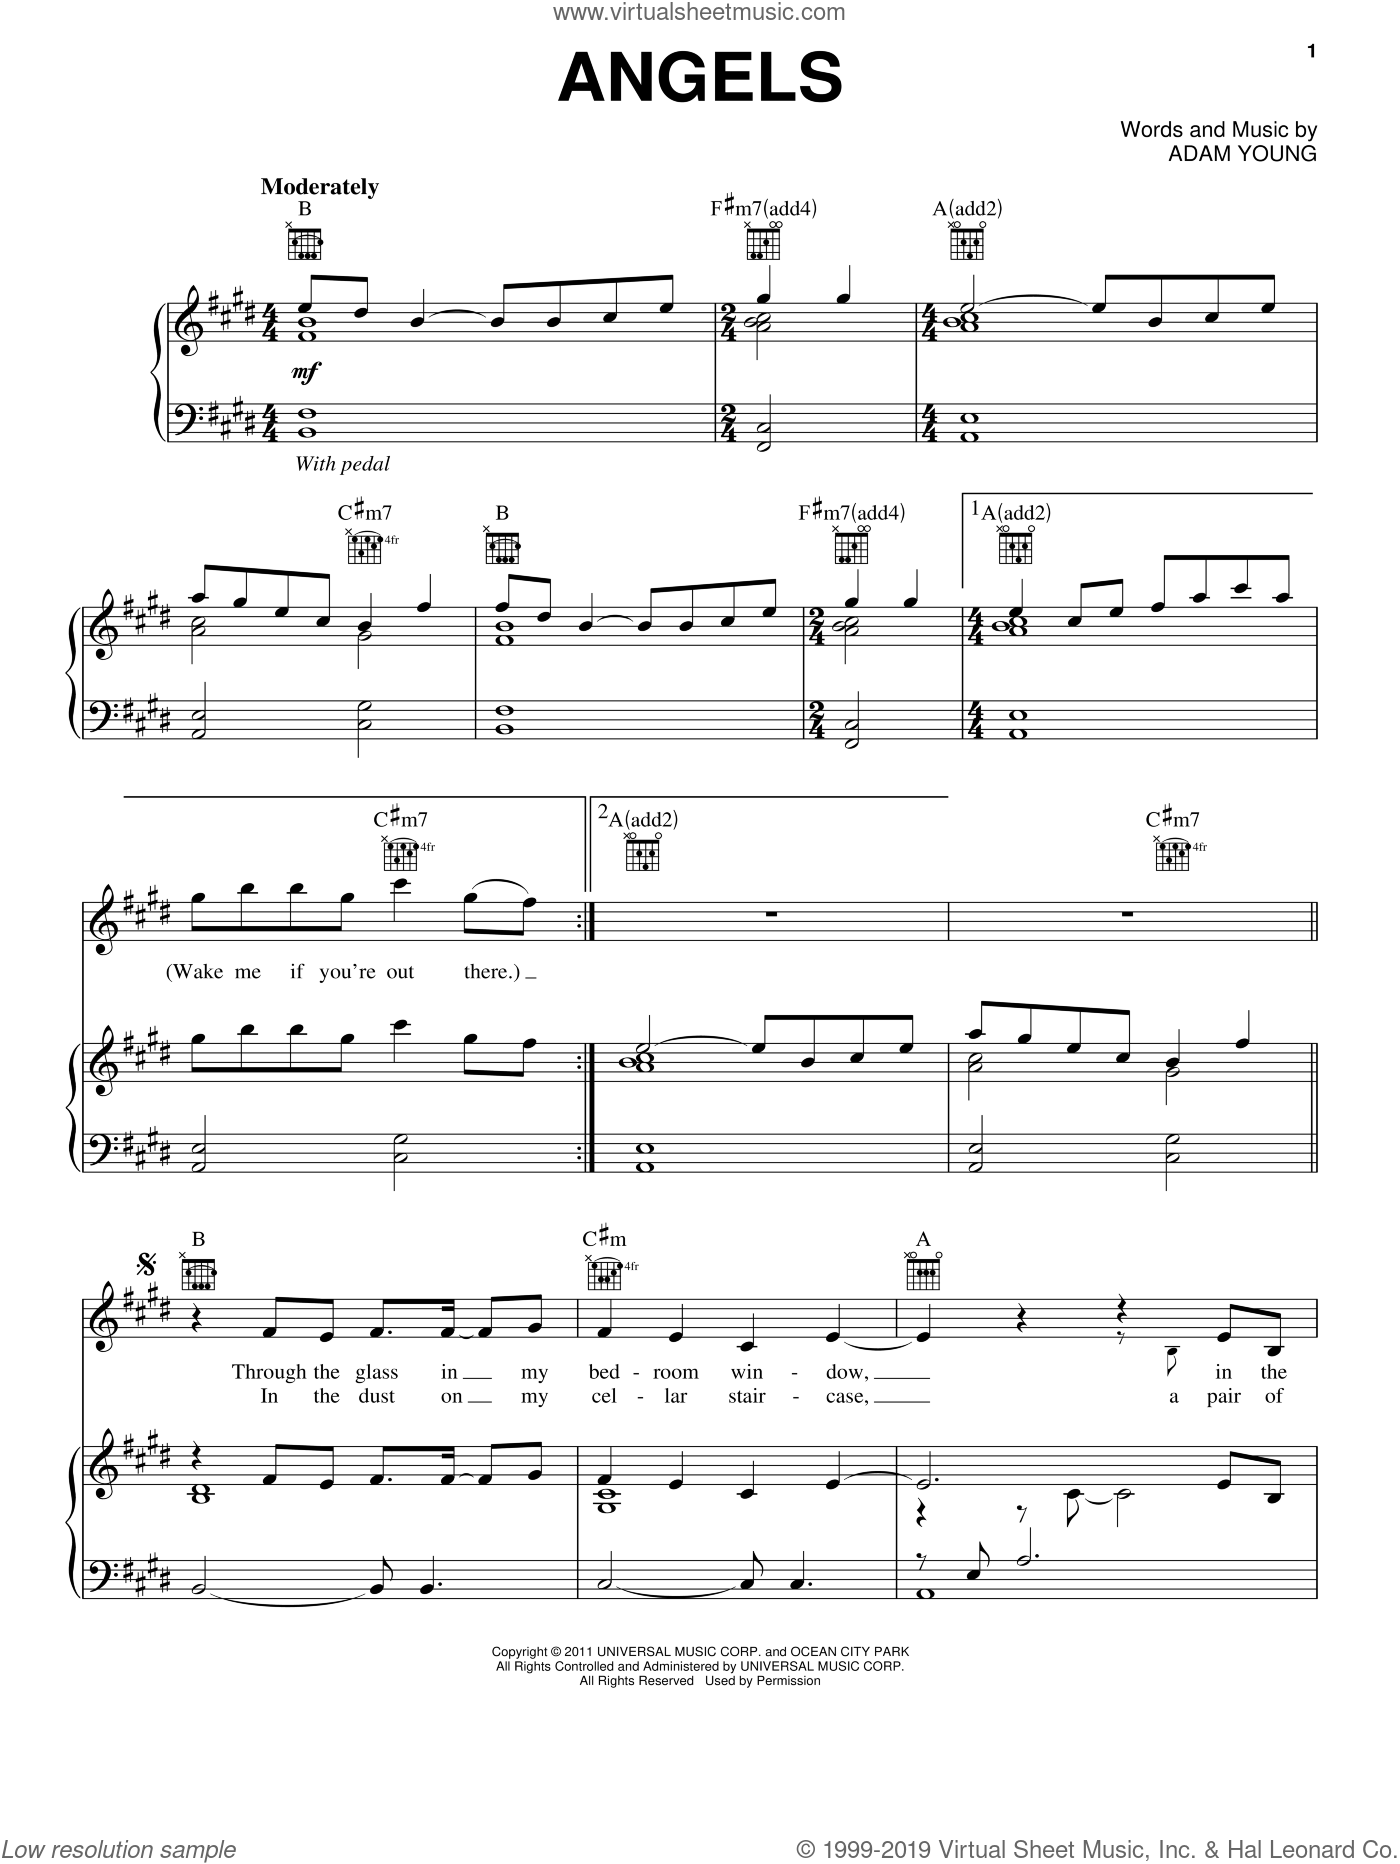 Angels sheet music for voice, piano or guitar by Adam Young